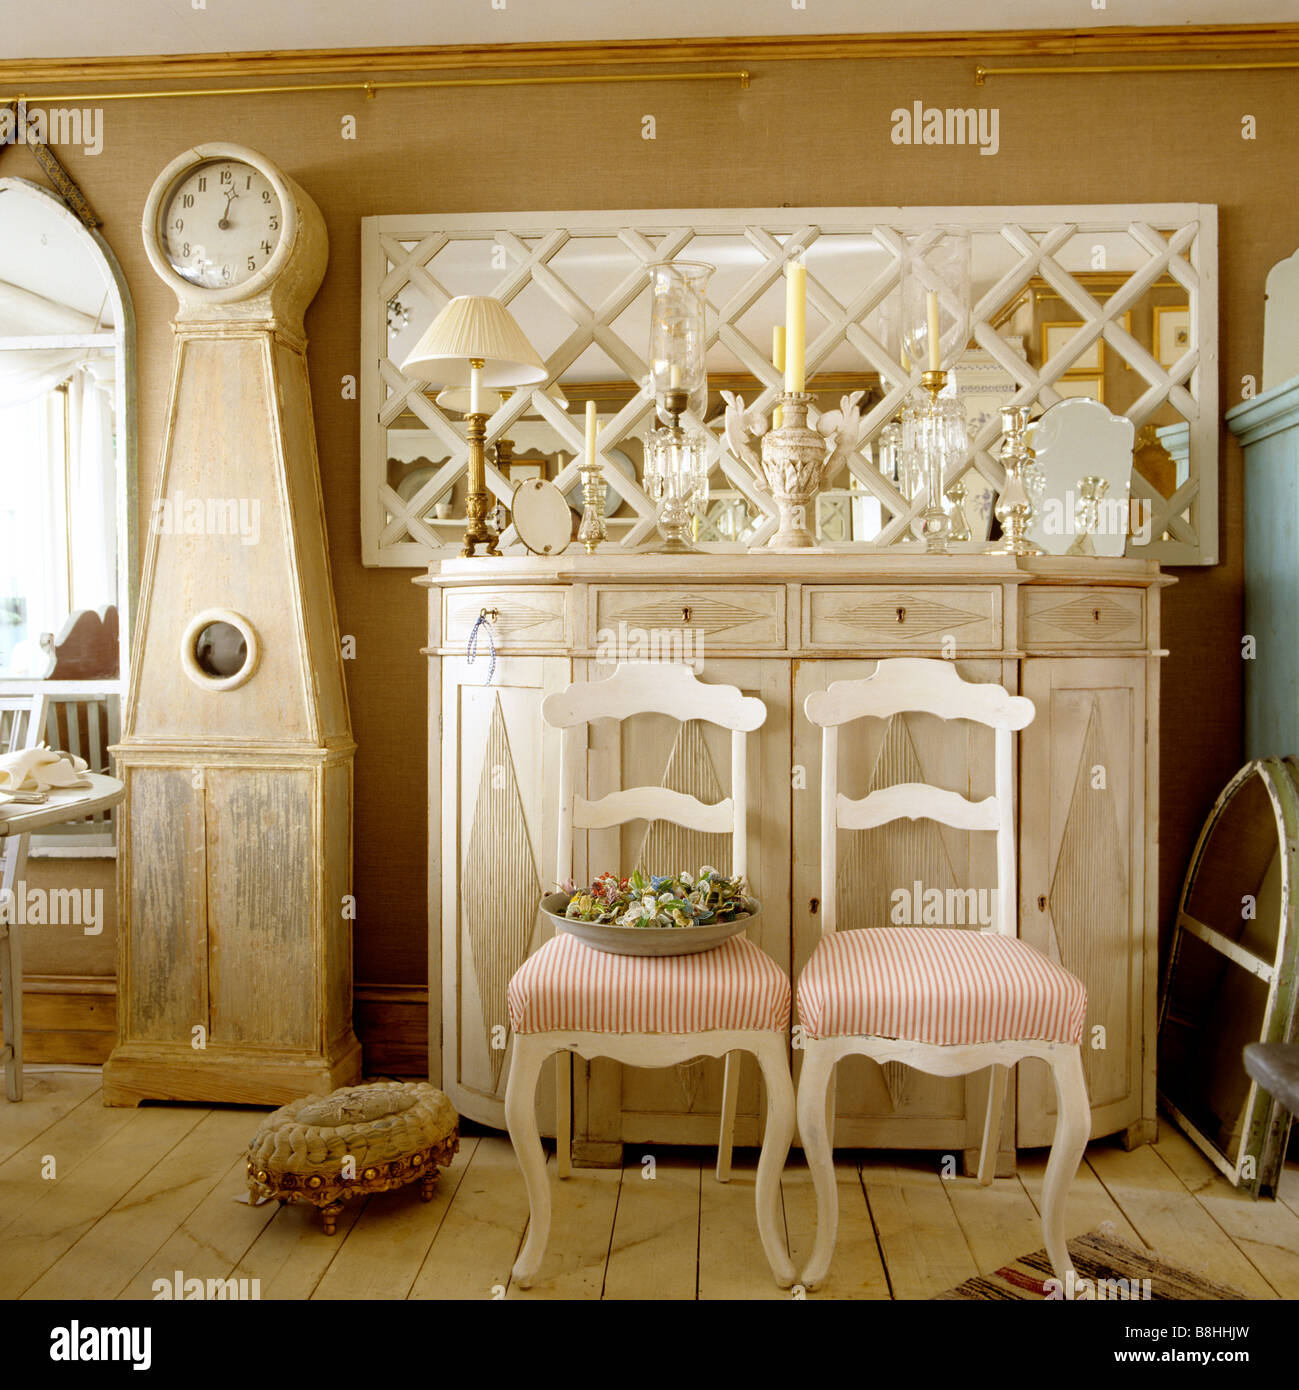 Swedish Longcase Clock And Painted Gustavian Commode With A Trellised  Framed Mirror   Stock Image